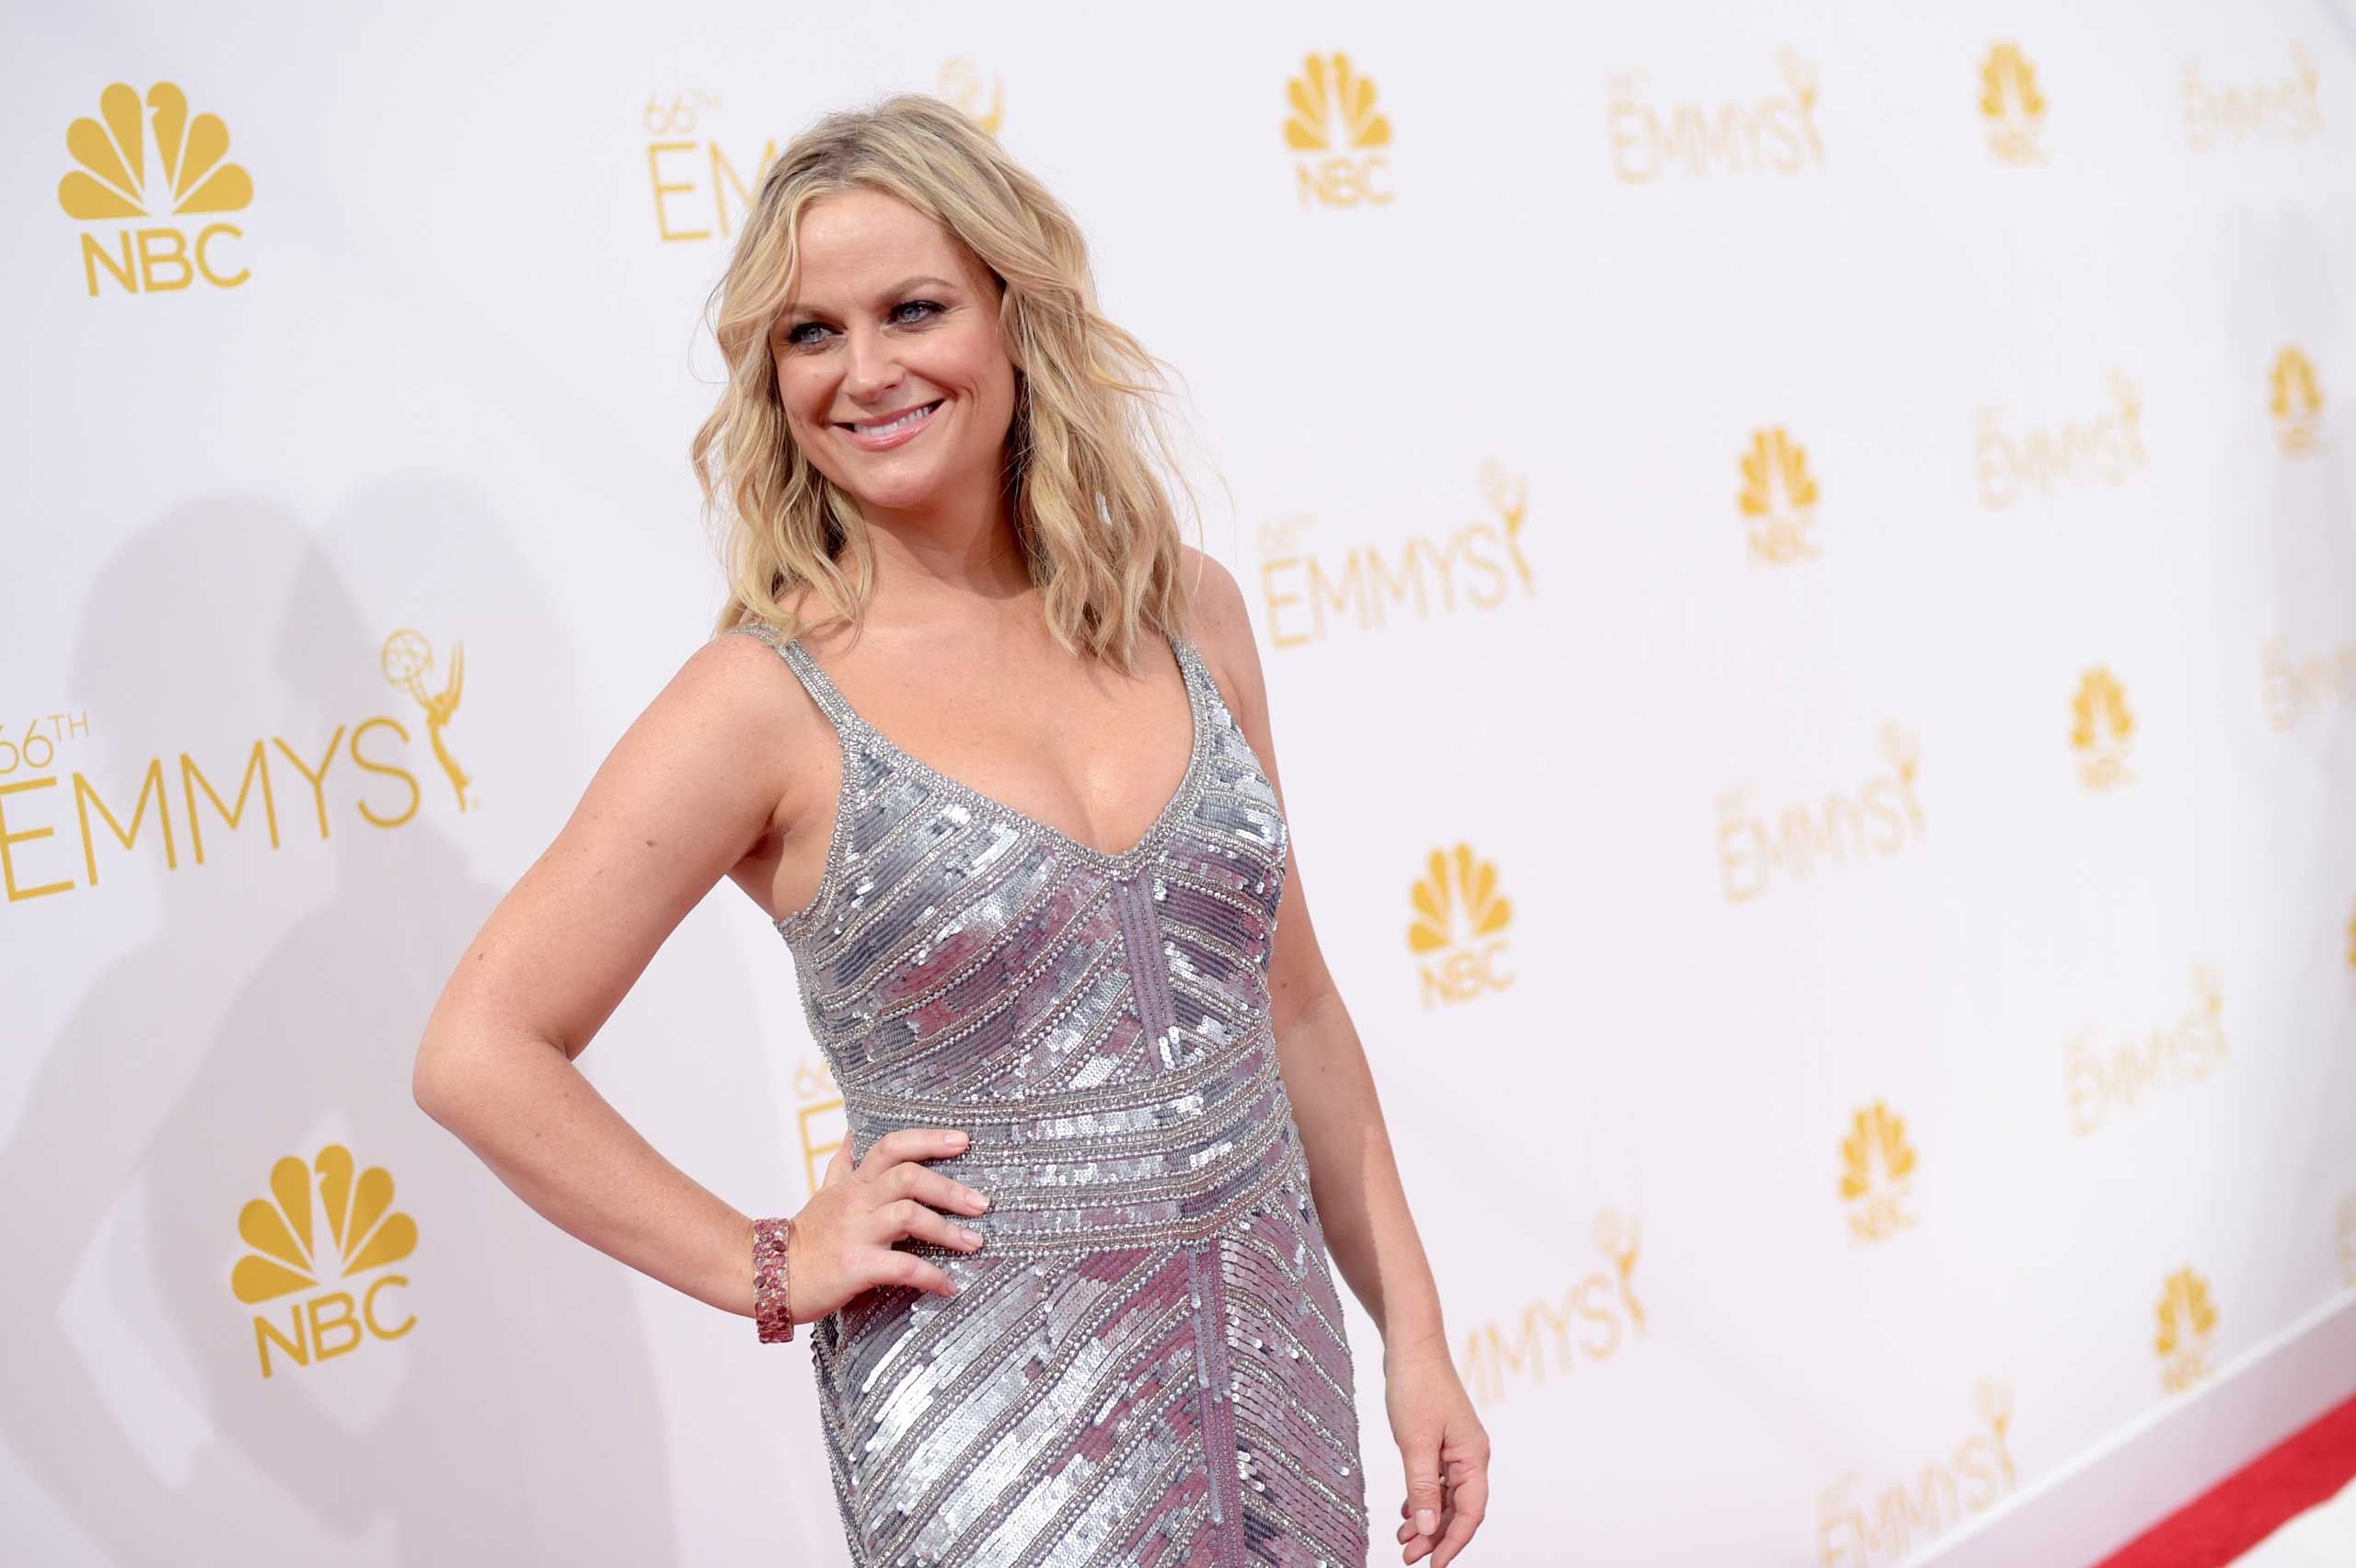 "<strong>Amy Poehler</strong> says she's confused by how many women deny that they're feminists, ""but then they go on to explain what they support and live by — it's feminism exactly,"" she told Elle magazine in January.  ""That's like someone being like, 'I don't really believe in cars, but I drive one every day and I love that it gets me places and makes life so much easier and faster and I don't know what I would do without it.'"""